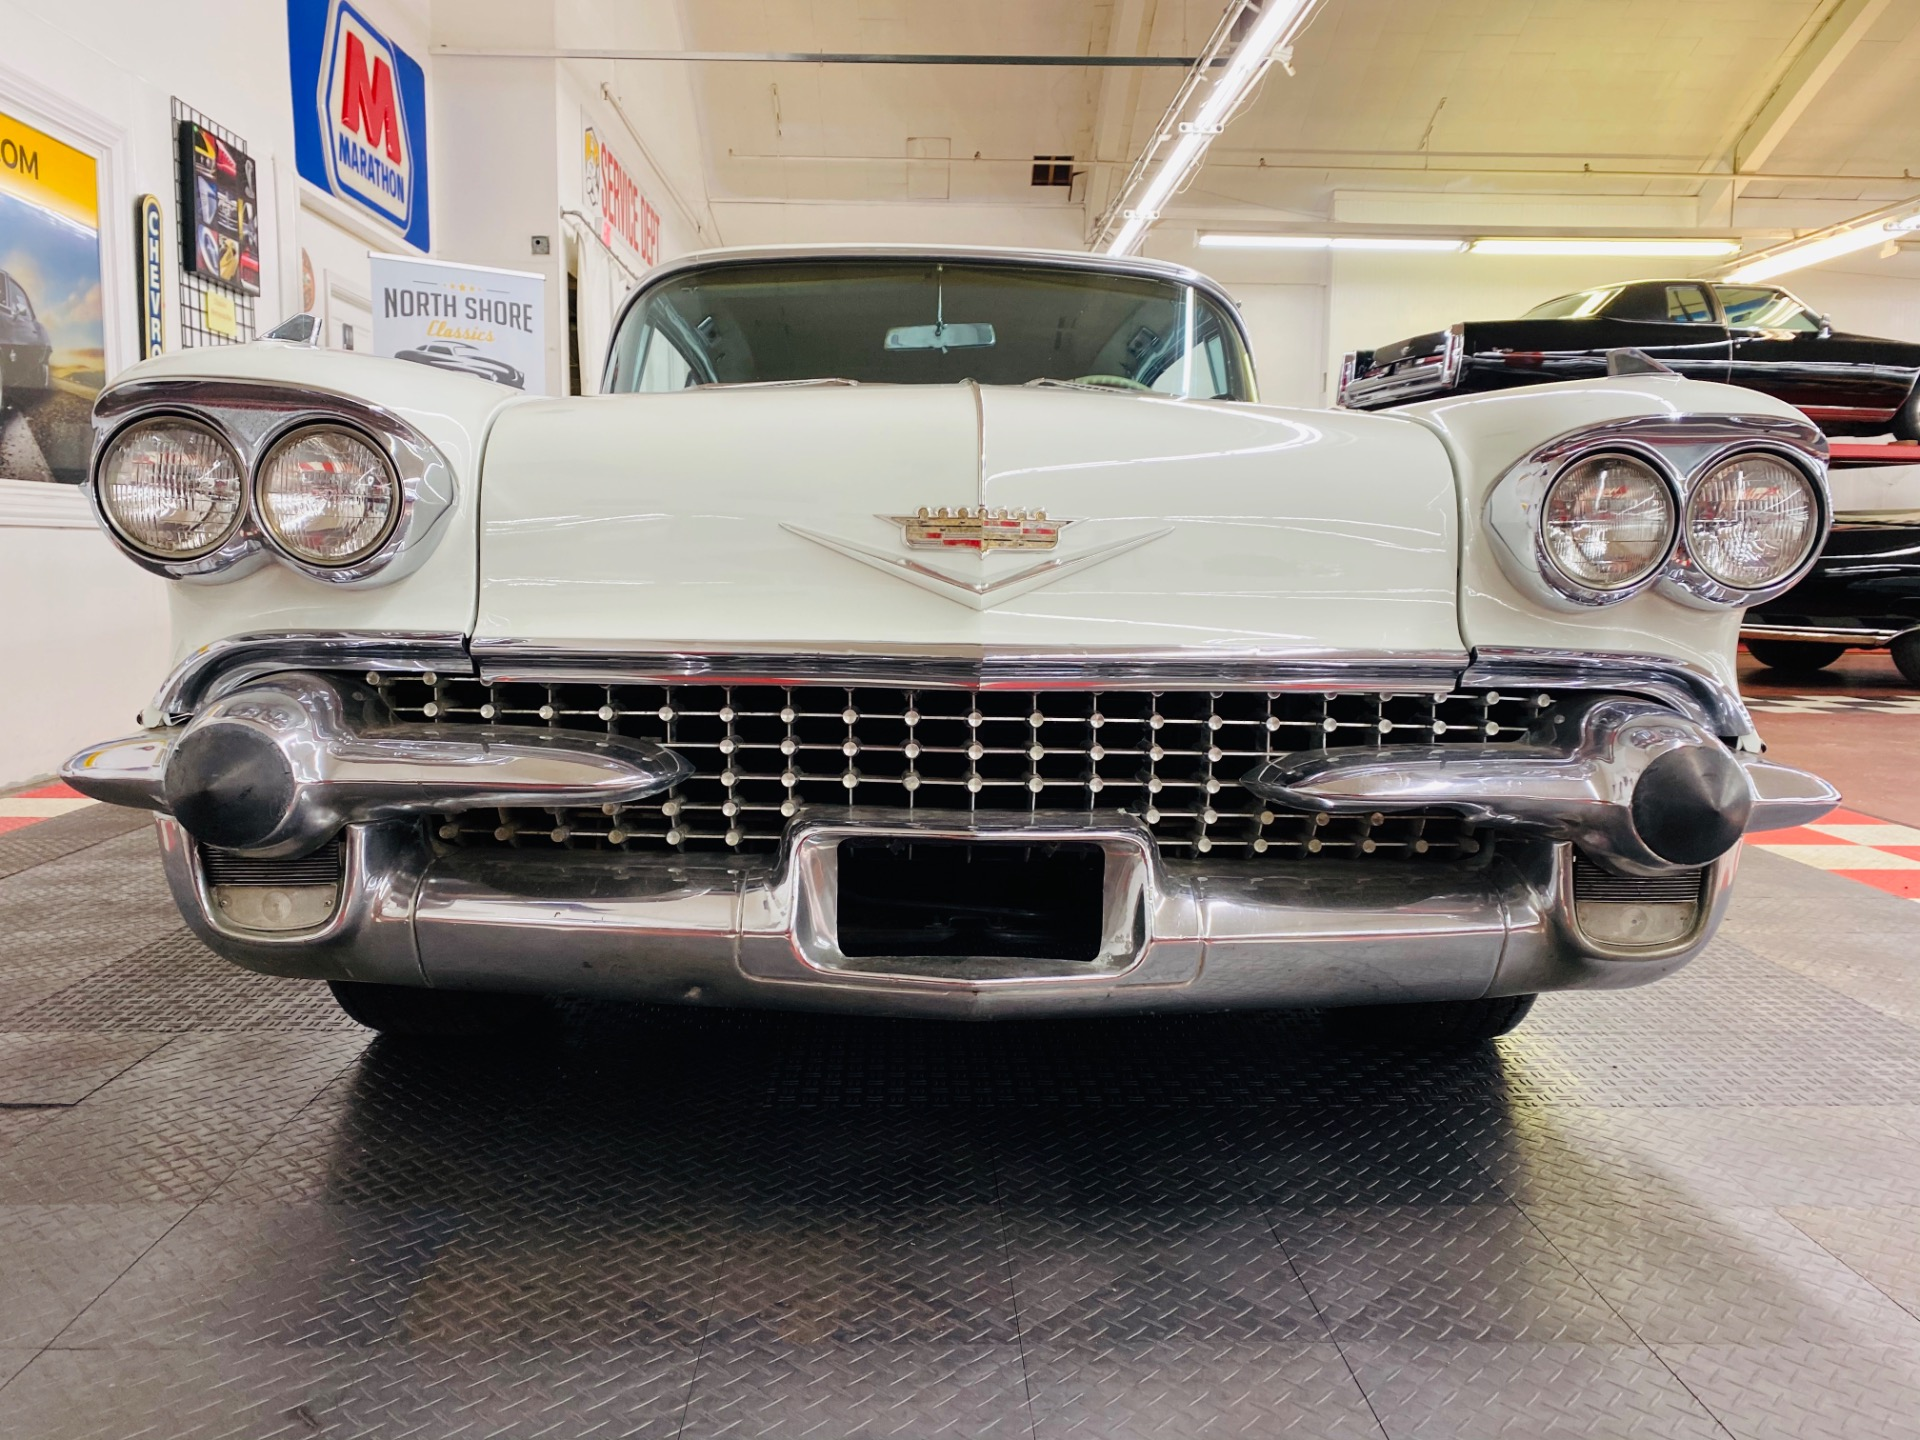 Used 1958 Cadillac Eldorado - SEVILLE COUPE - VERY CLEAN BODY - NICE PAINT - SEE VIDEO - | Mundelein, IL